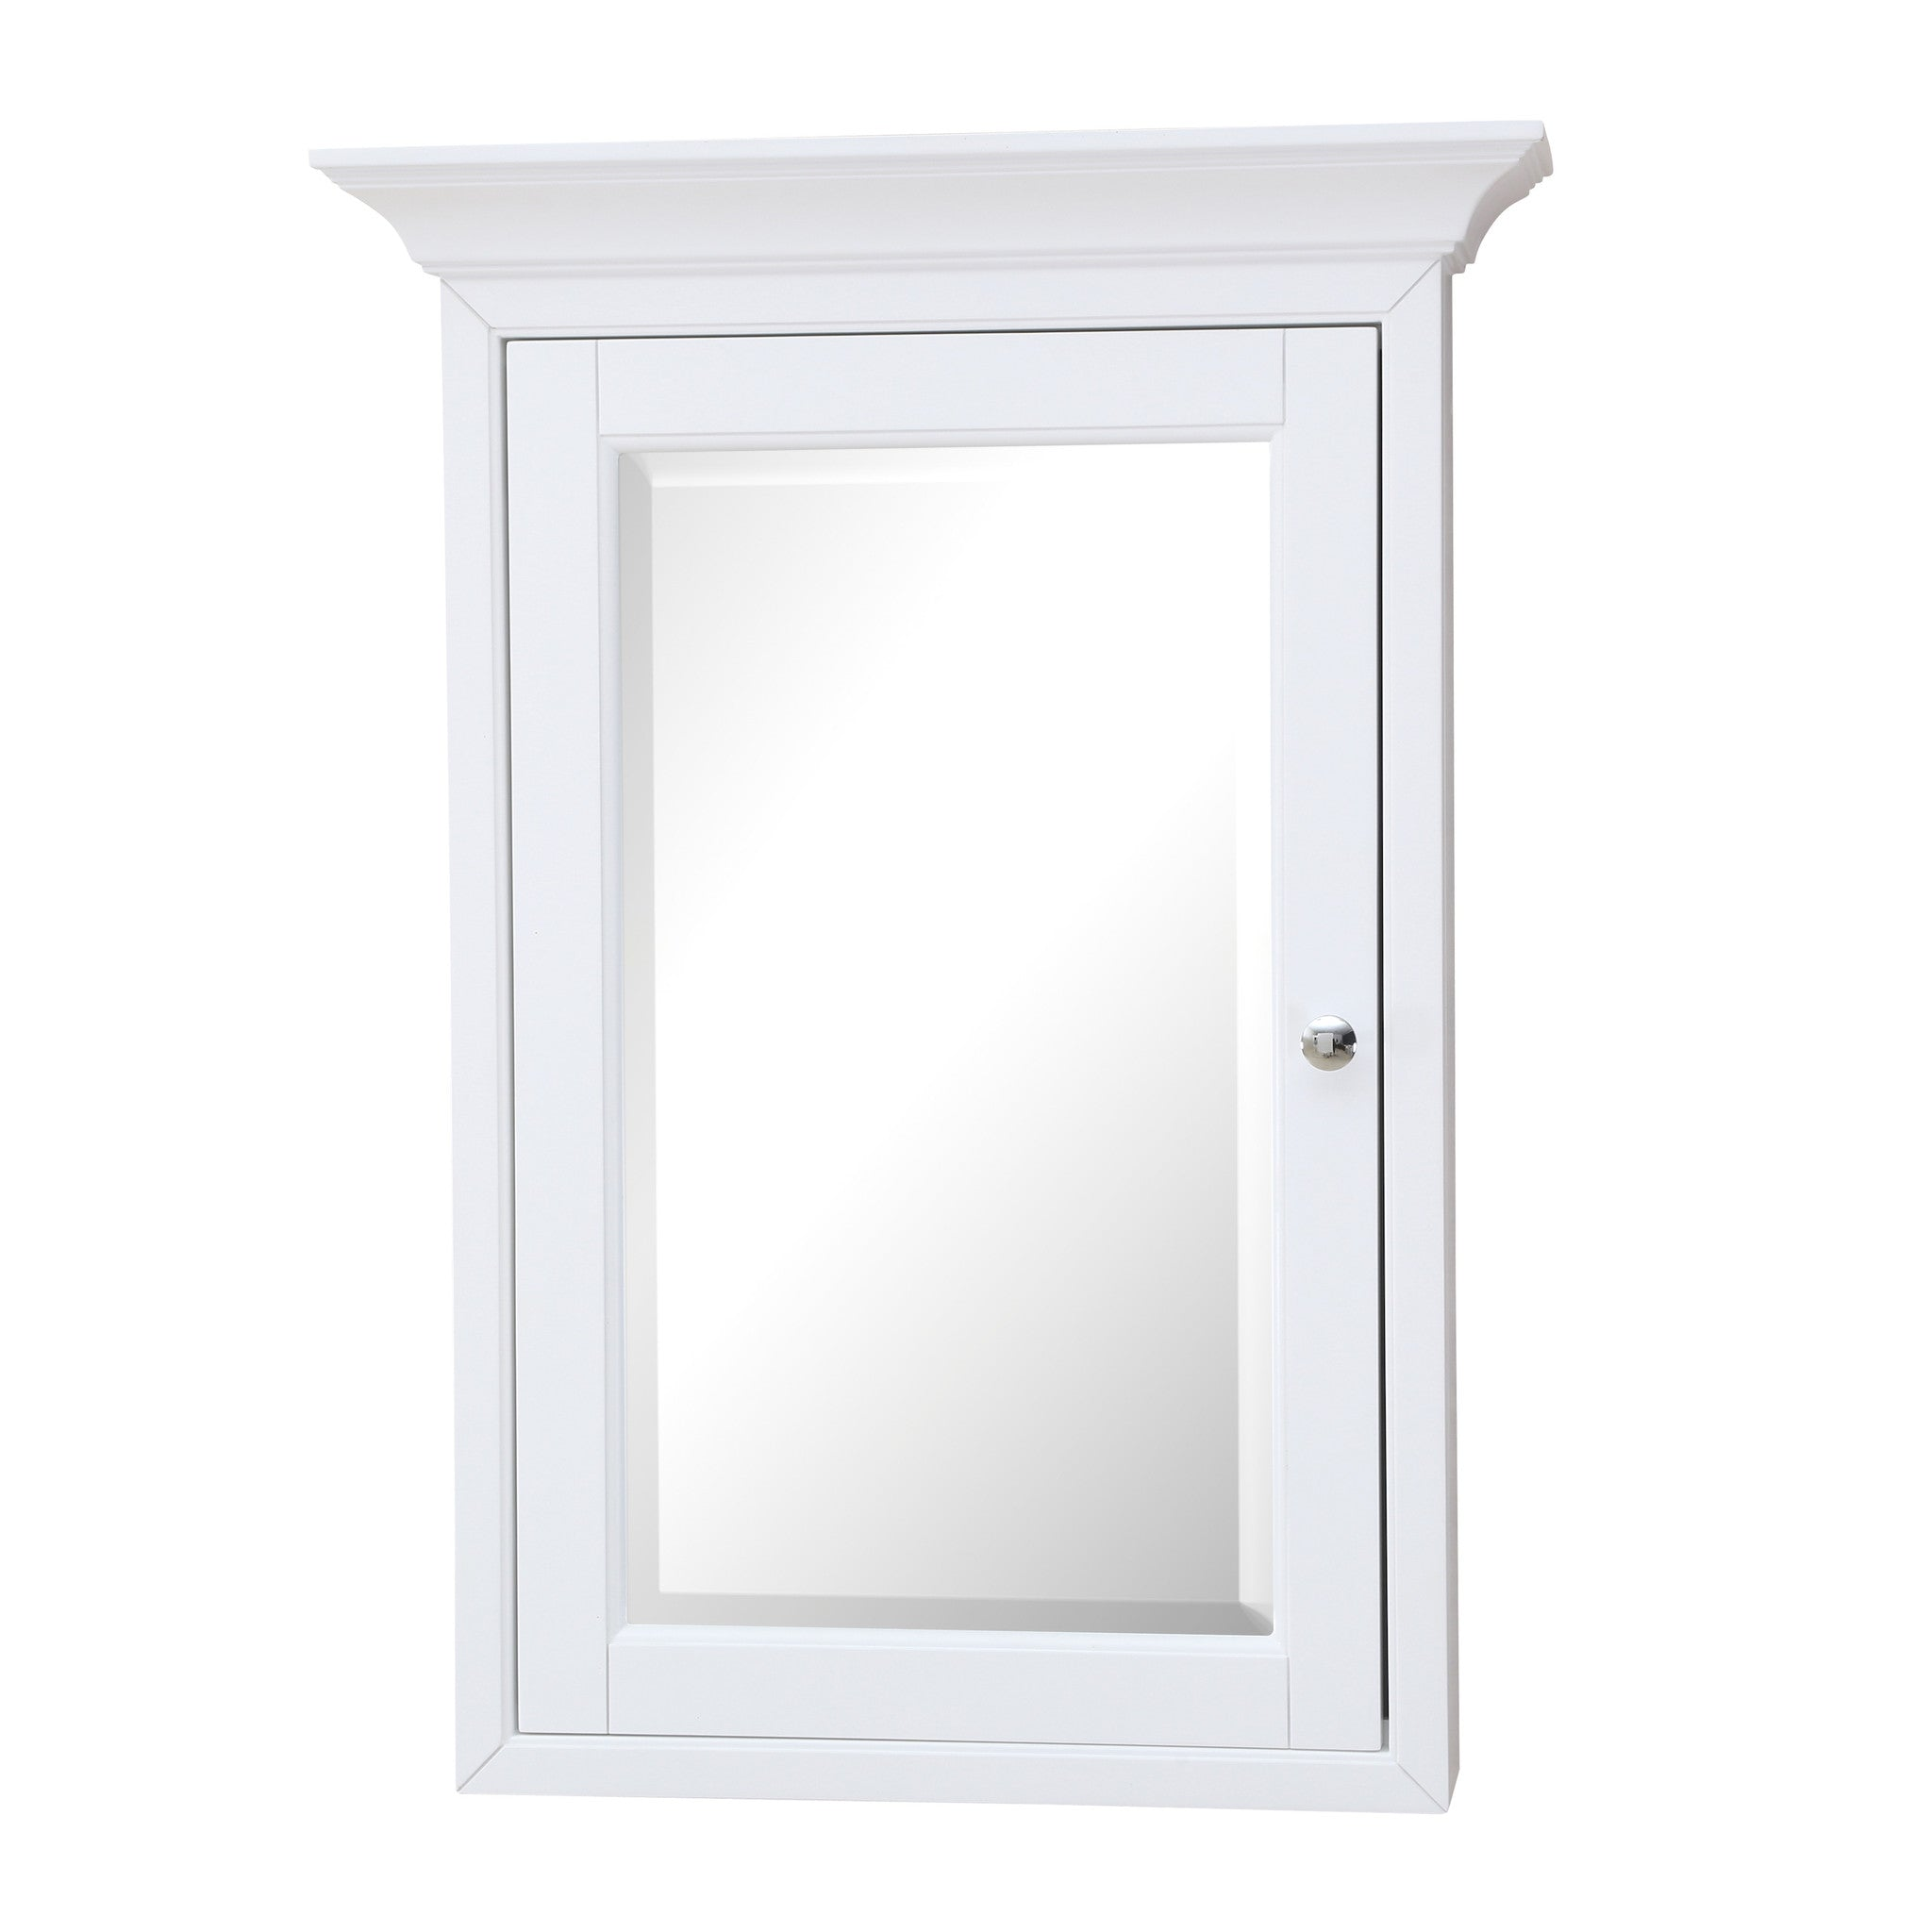 Newport Wall Mounted Medicine Cabinet (White) ...